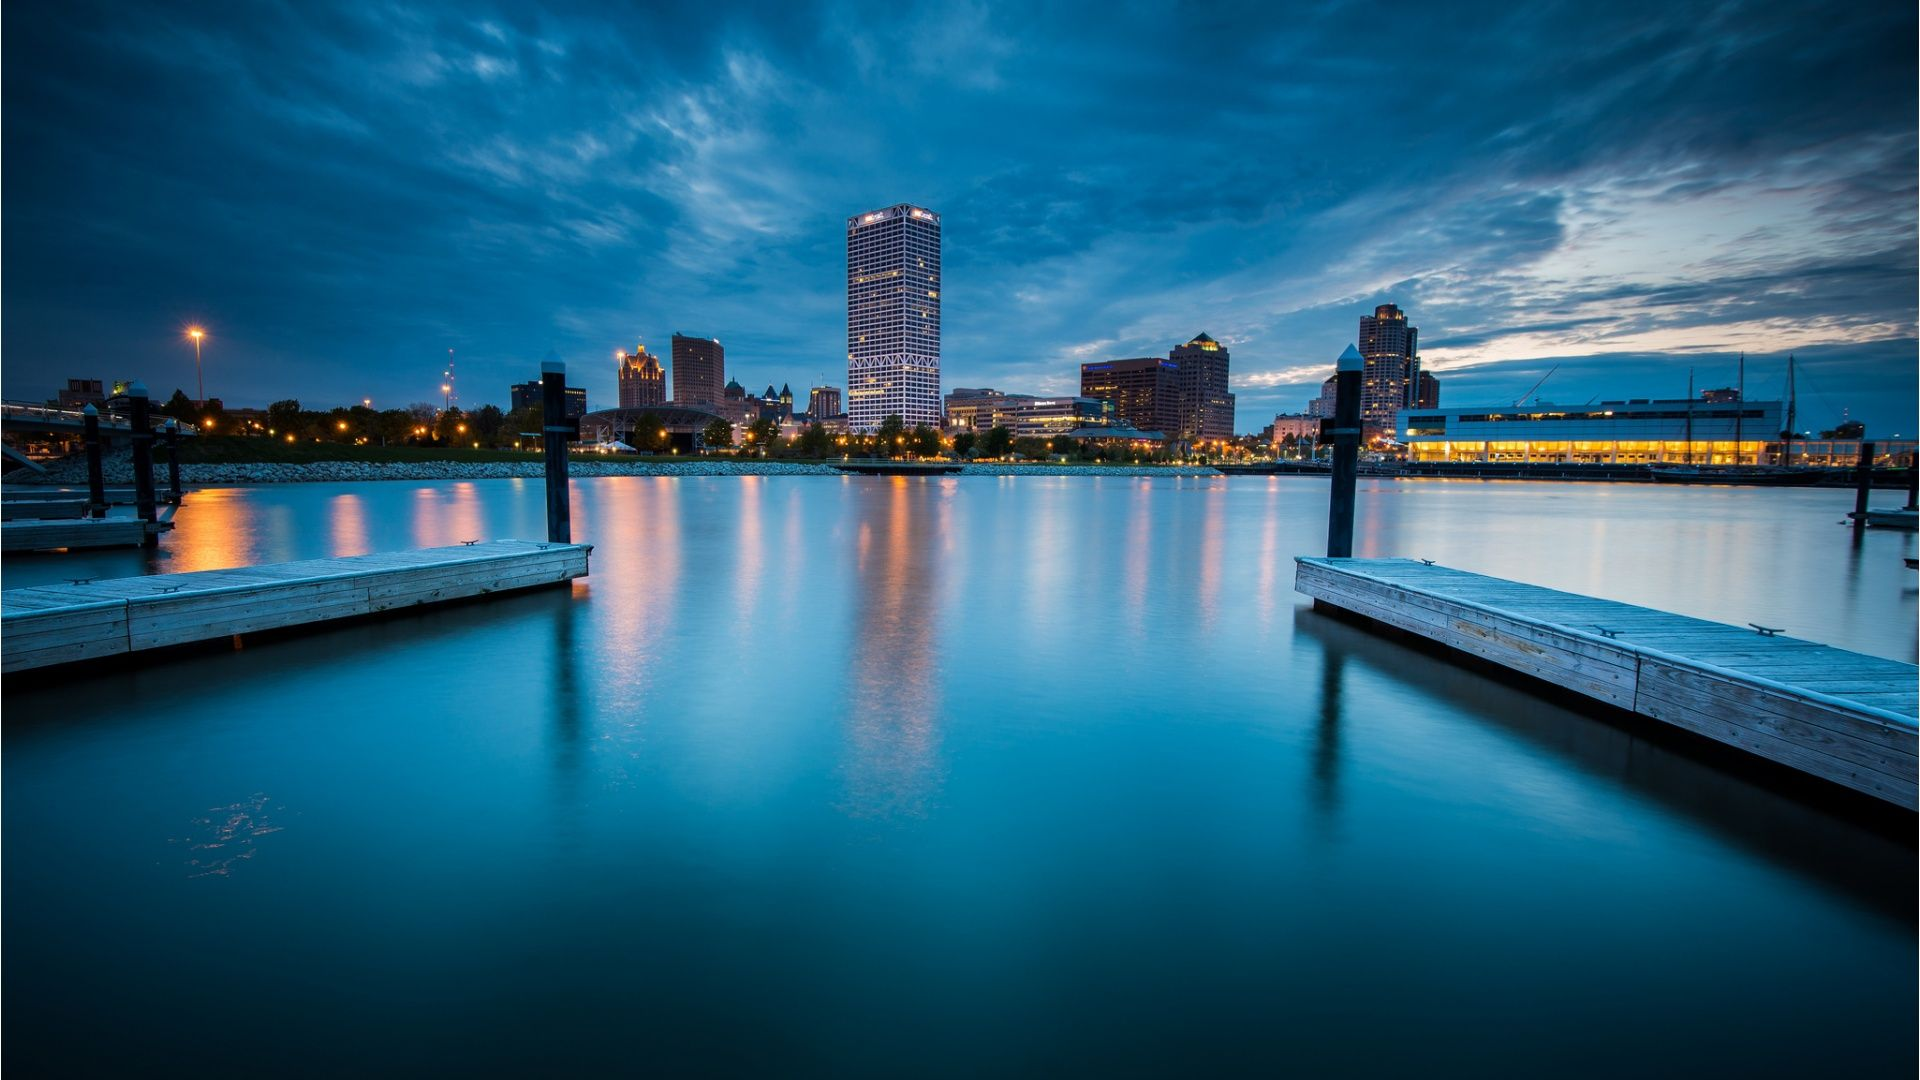 Pin by hdpicorner on Desktop Wallpapers Milwaukee city 1920x1080